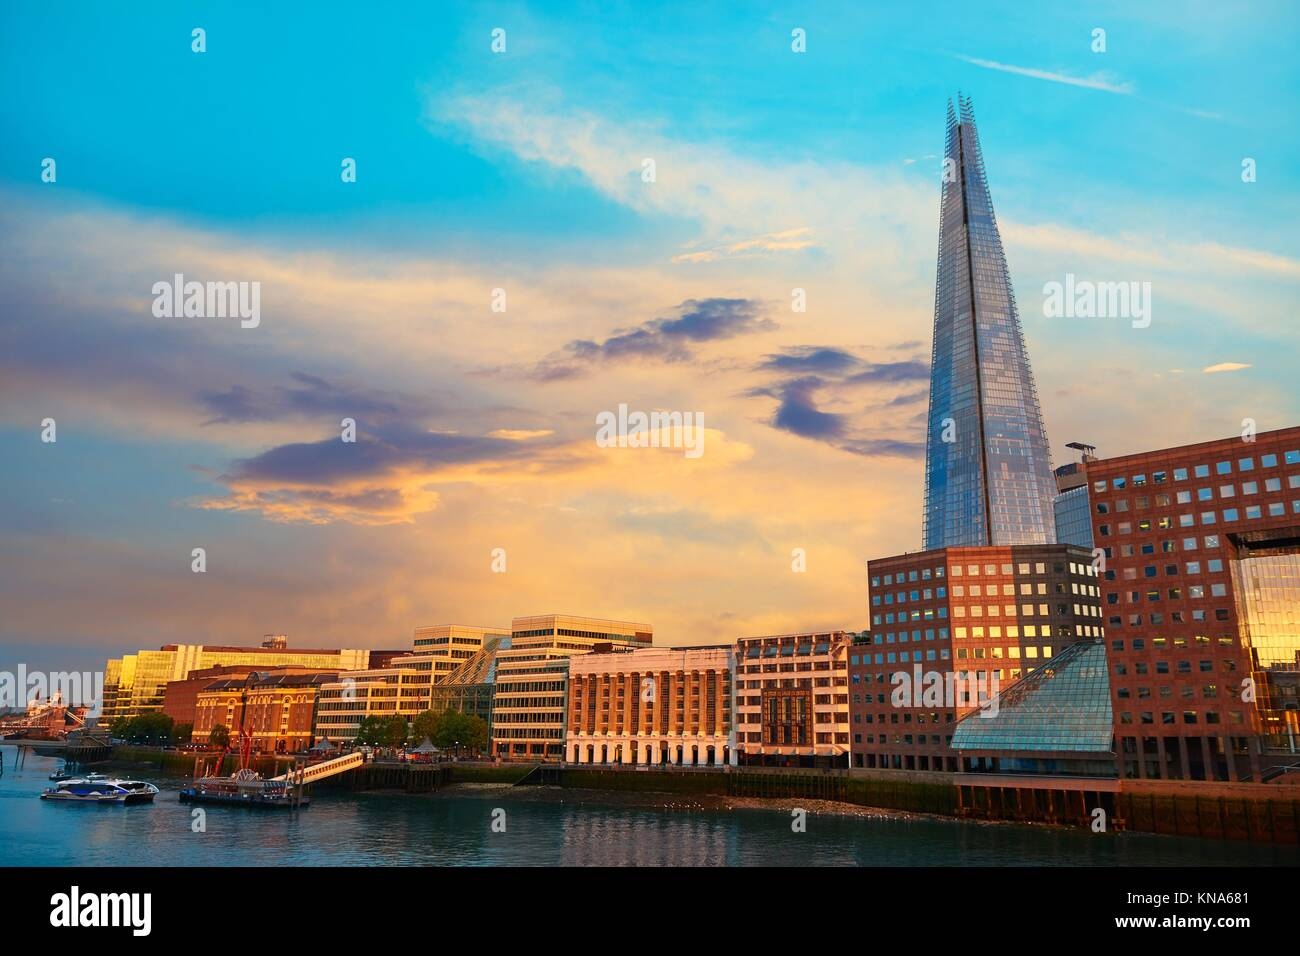 Le Shard London building au coucher du soleil en Angleterre. Photo Stock